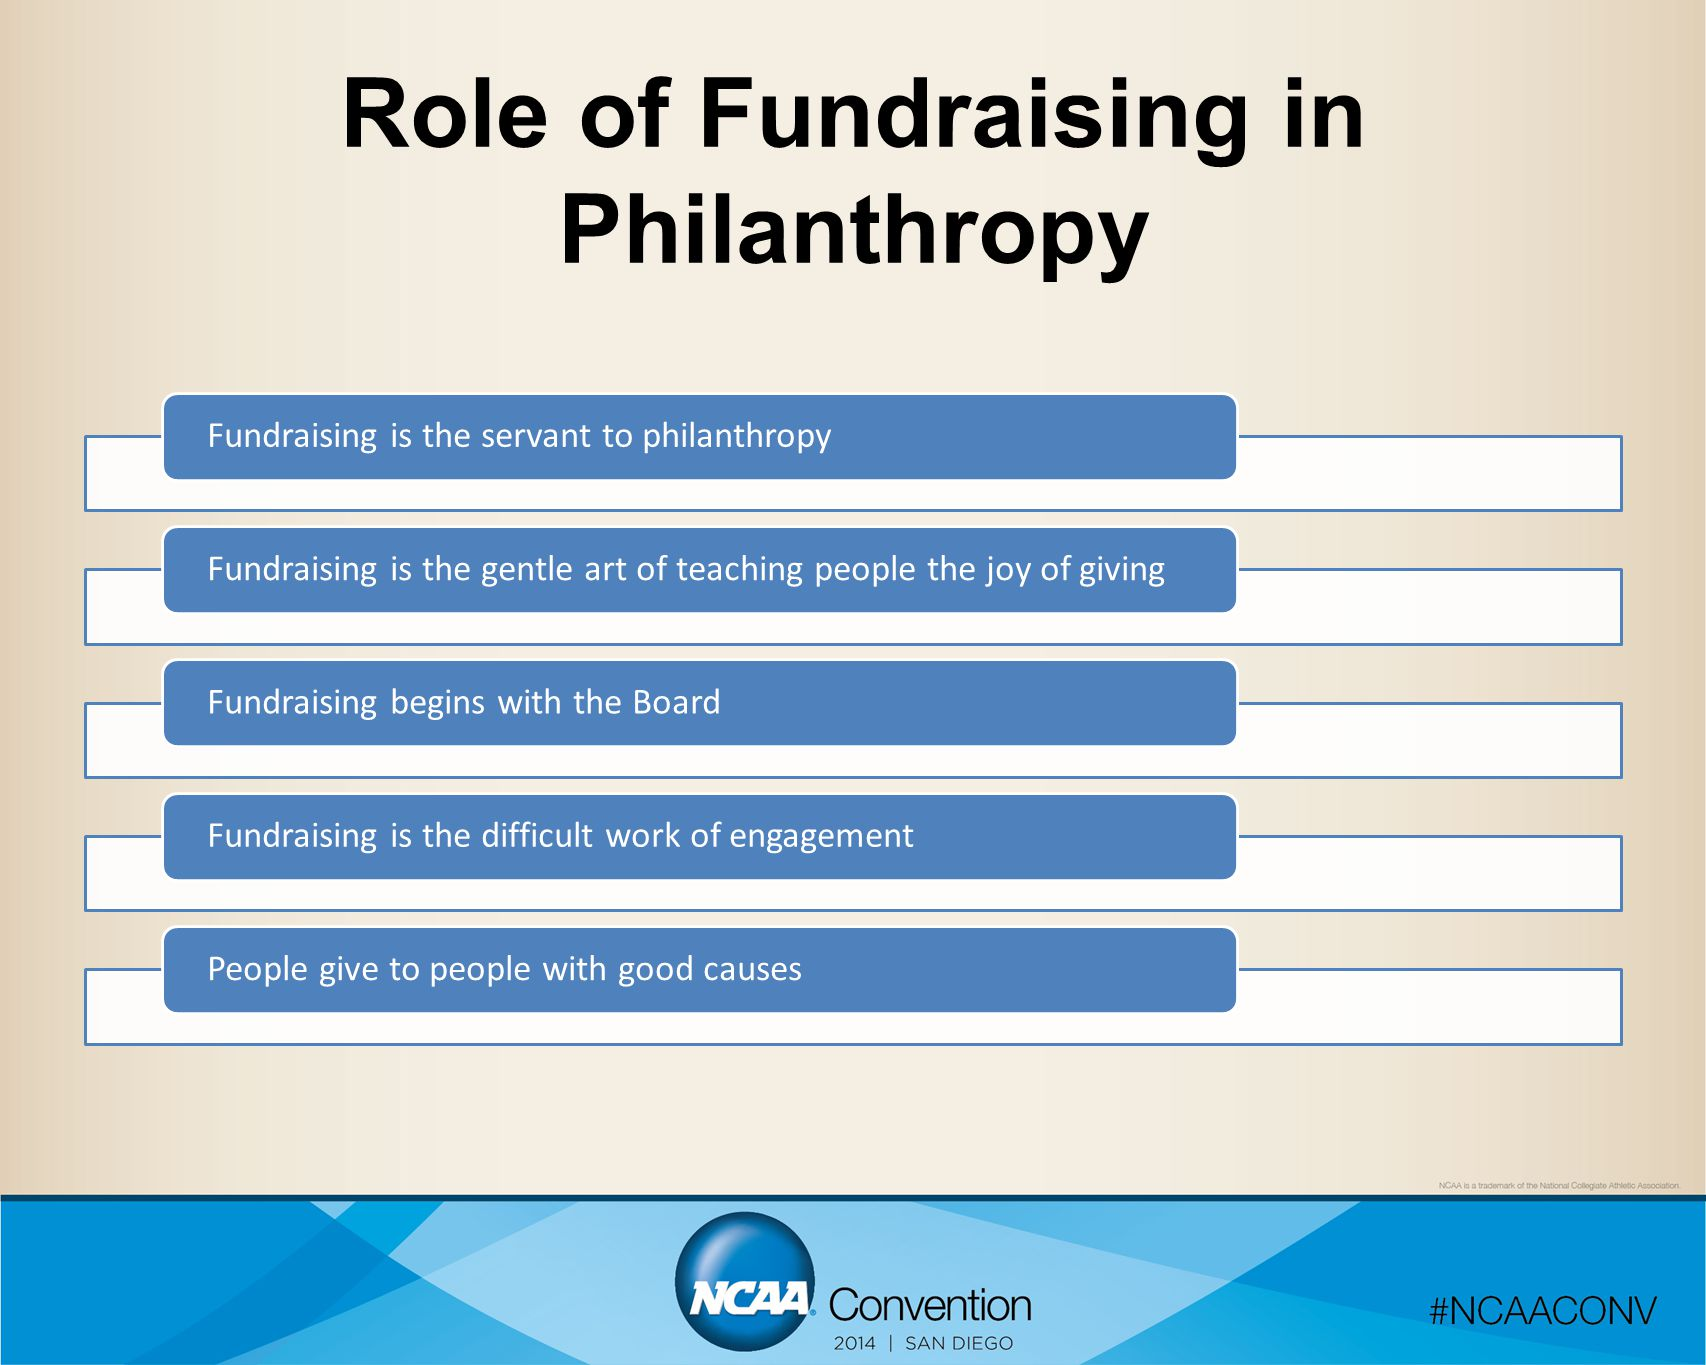 Role of Fundraising in Philanthropy